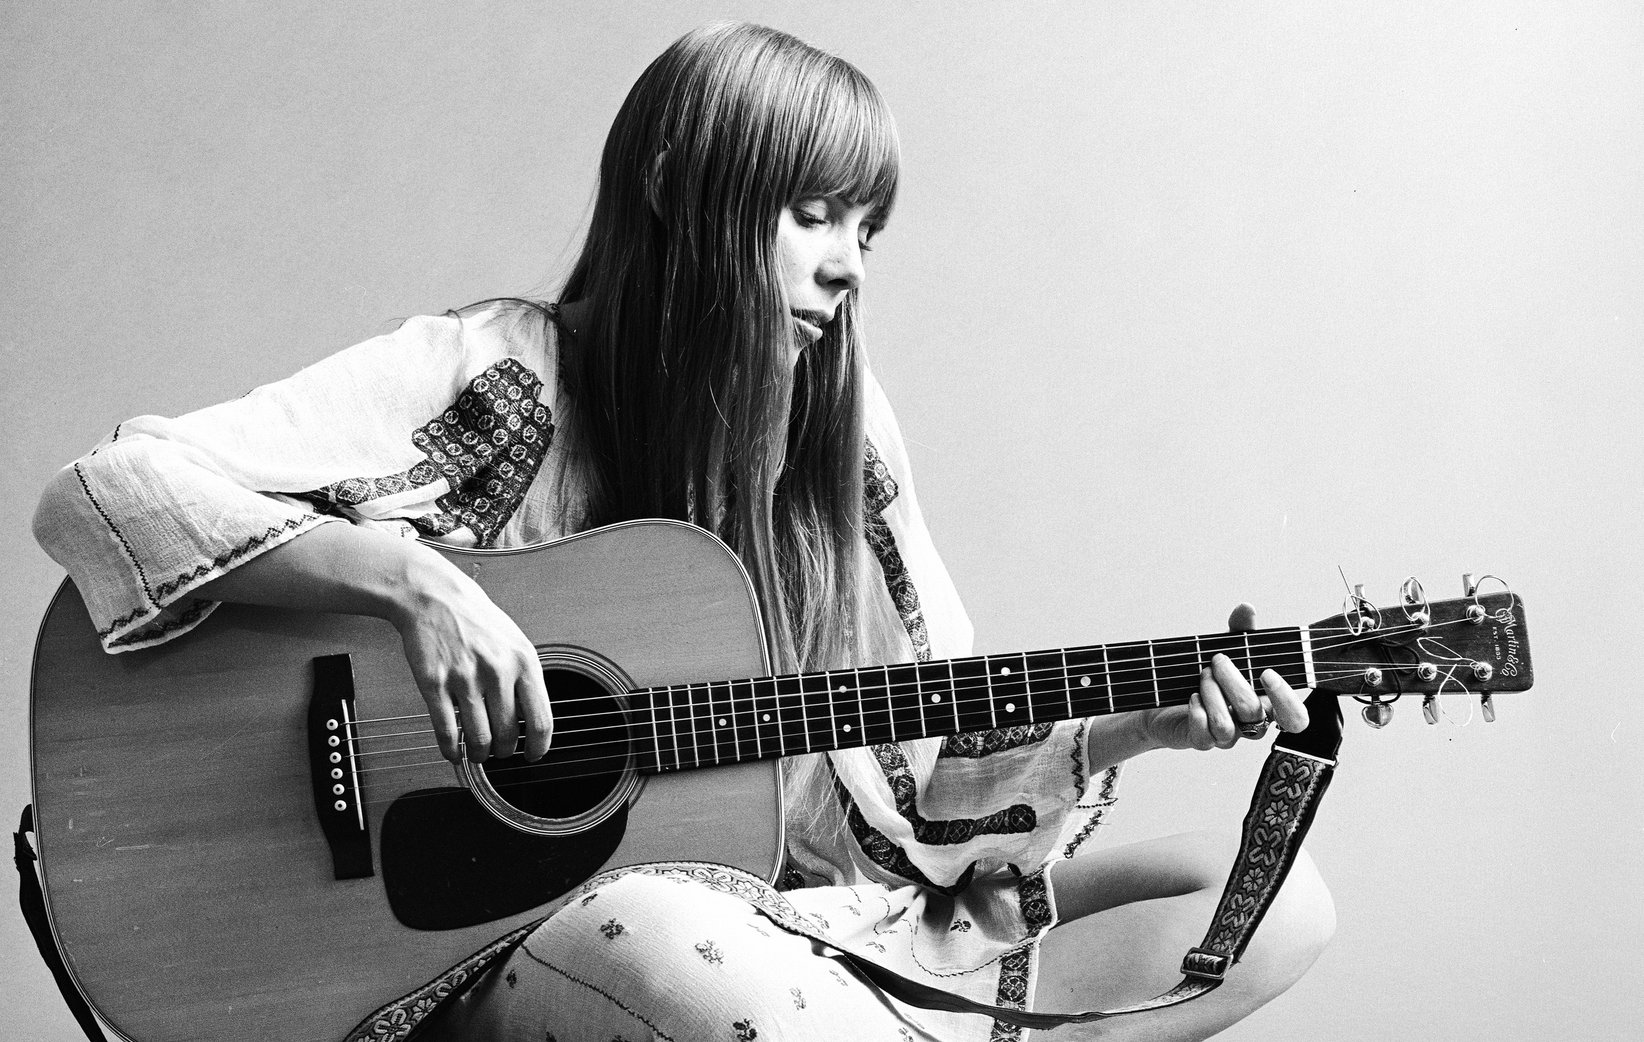 Reloaded twaddle – RT @RollingStone: Happy birthday Joni Mitchell! Check out these 10 poignant tune...